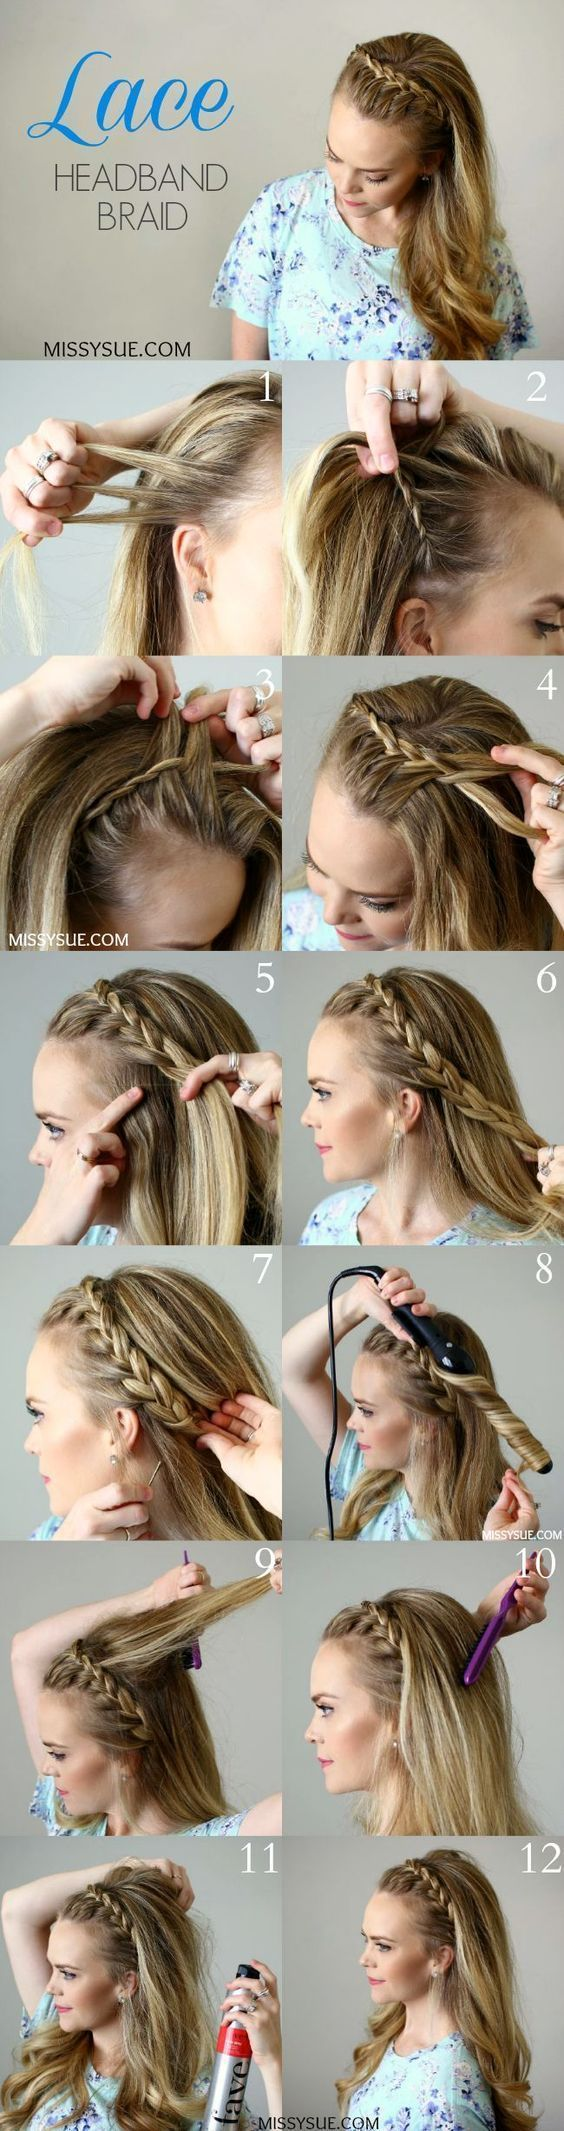 Ways To Style Your Hair 7 Ways To Style Your Hair For Every Summer Occasion  Braid .